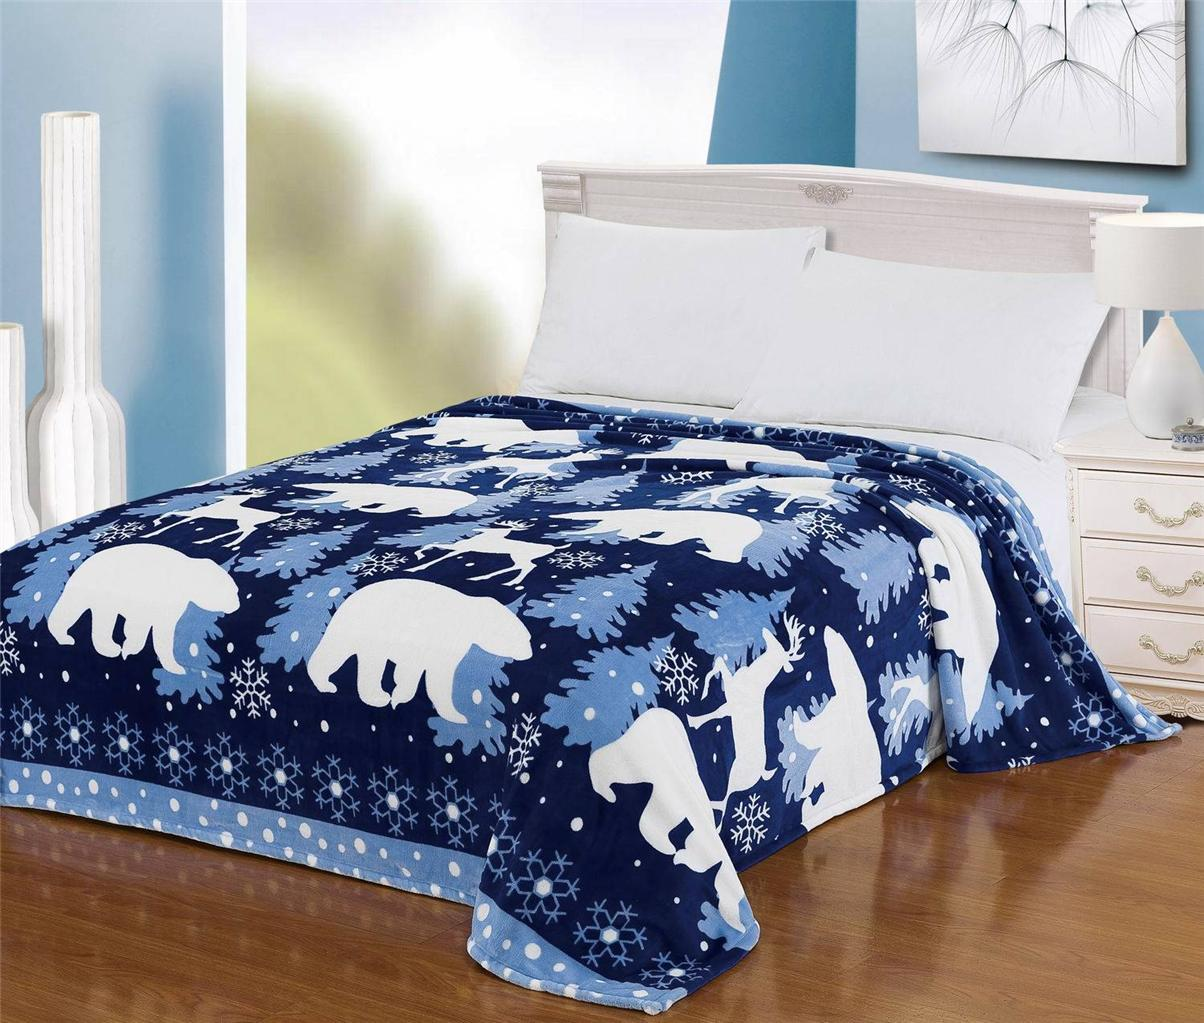 Euphoria Super Soft Snug Throw Blanket Bedspread Polar